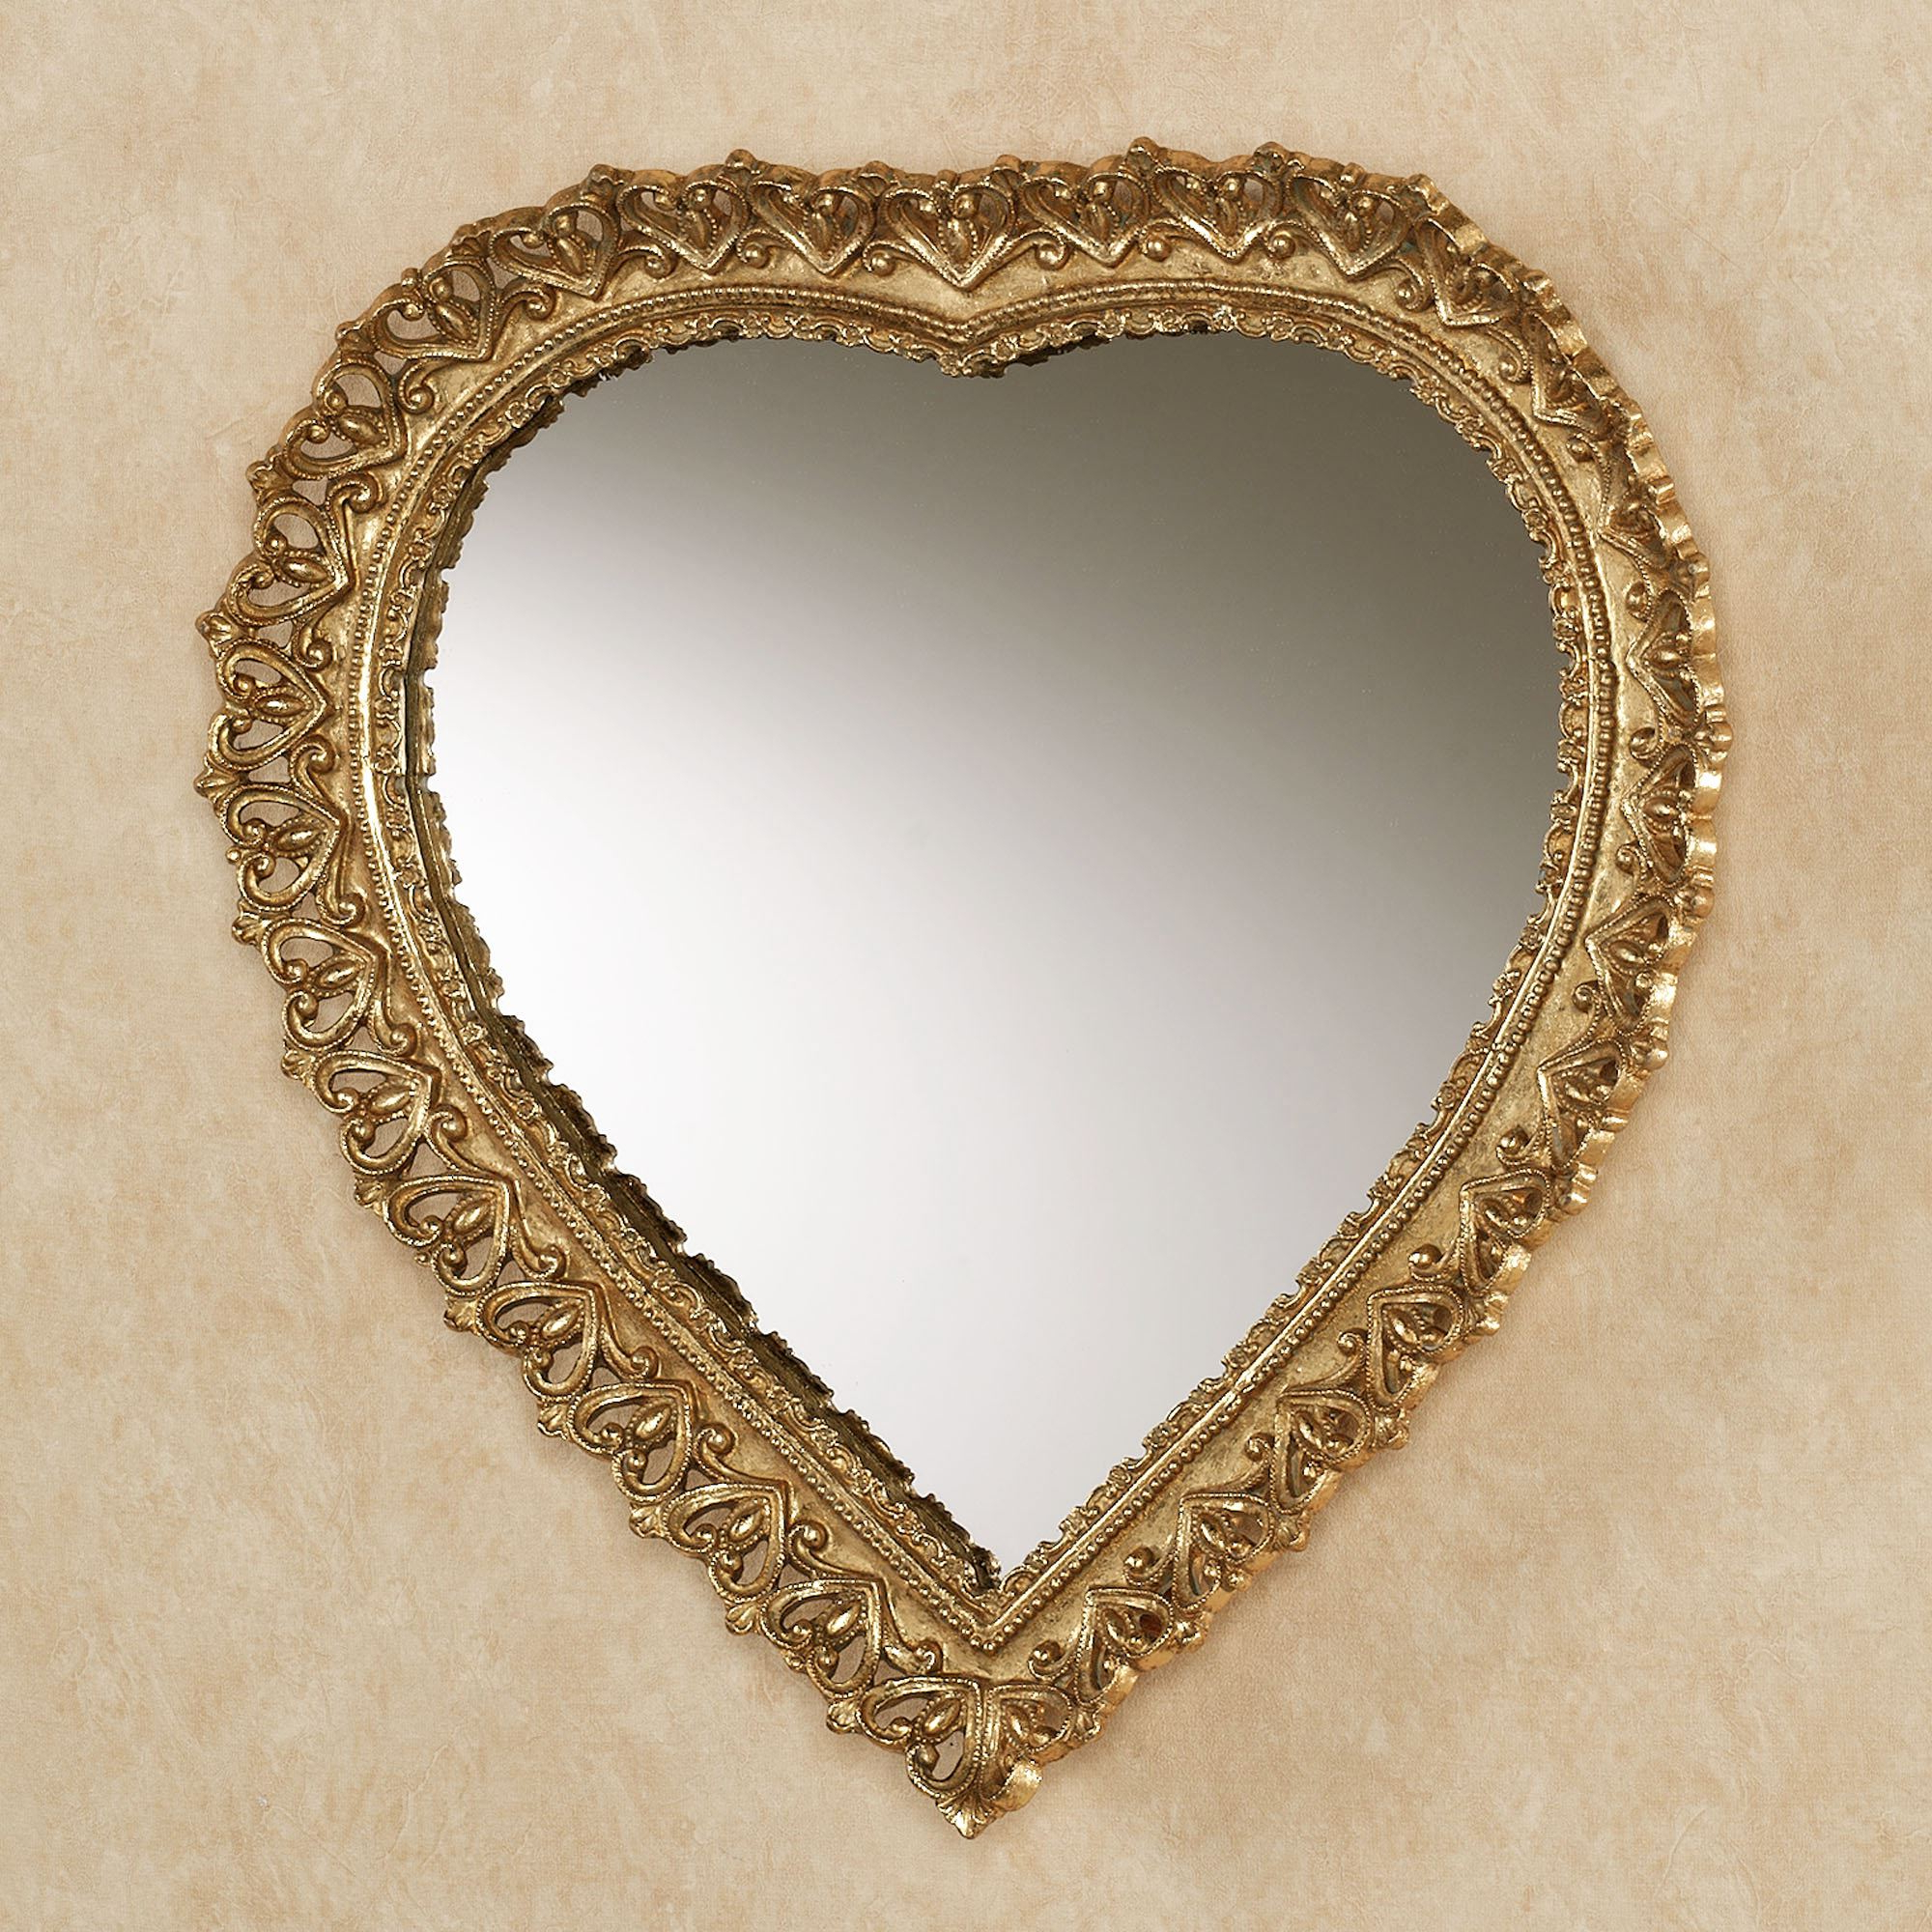 Heart Shaped Wall Mirrors Within Preferred Carenda Gold Heart Shaped Wall Mirror (View 6 of 20)